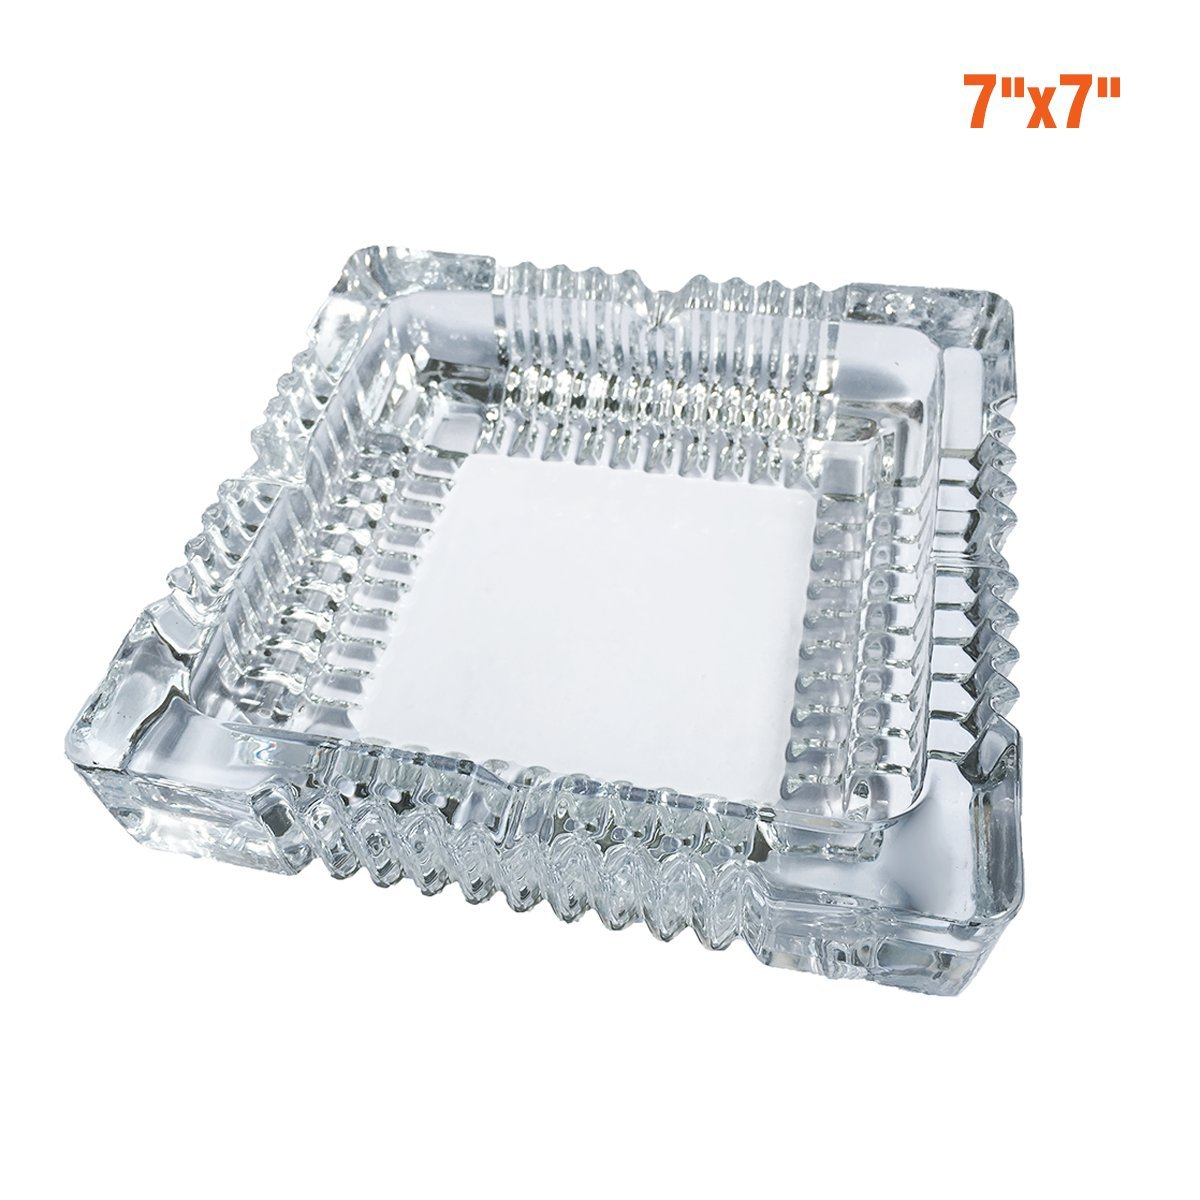 BSWEEII Large Square Glass Ashtray for Men,Big Cigar Smoke Ashtray for Home and Restaurant 7x7inch